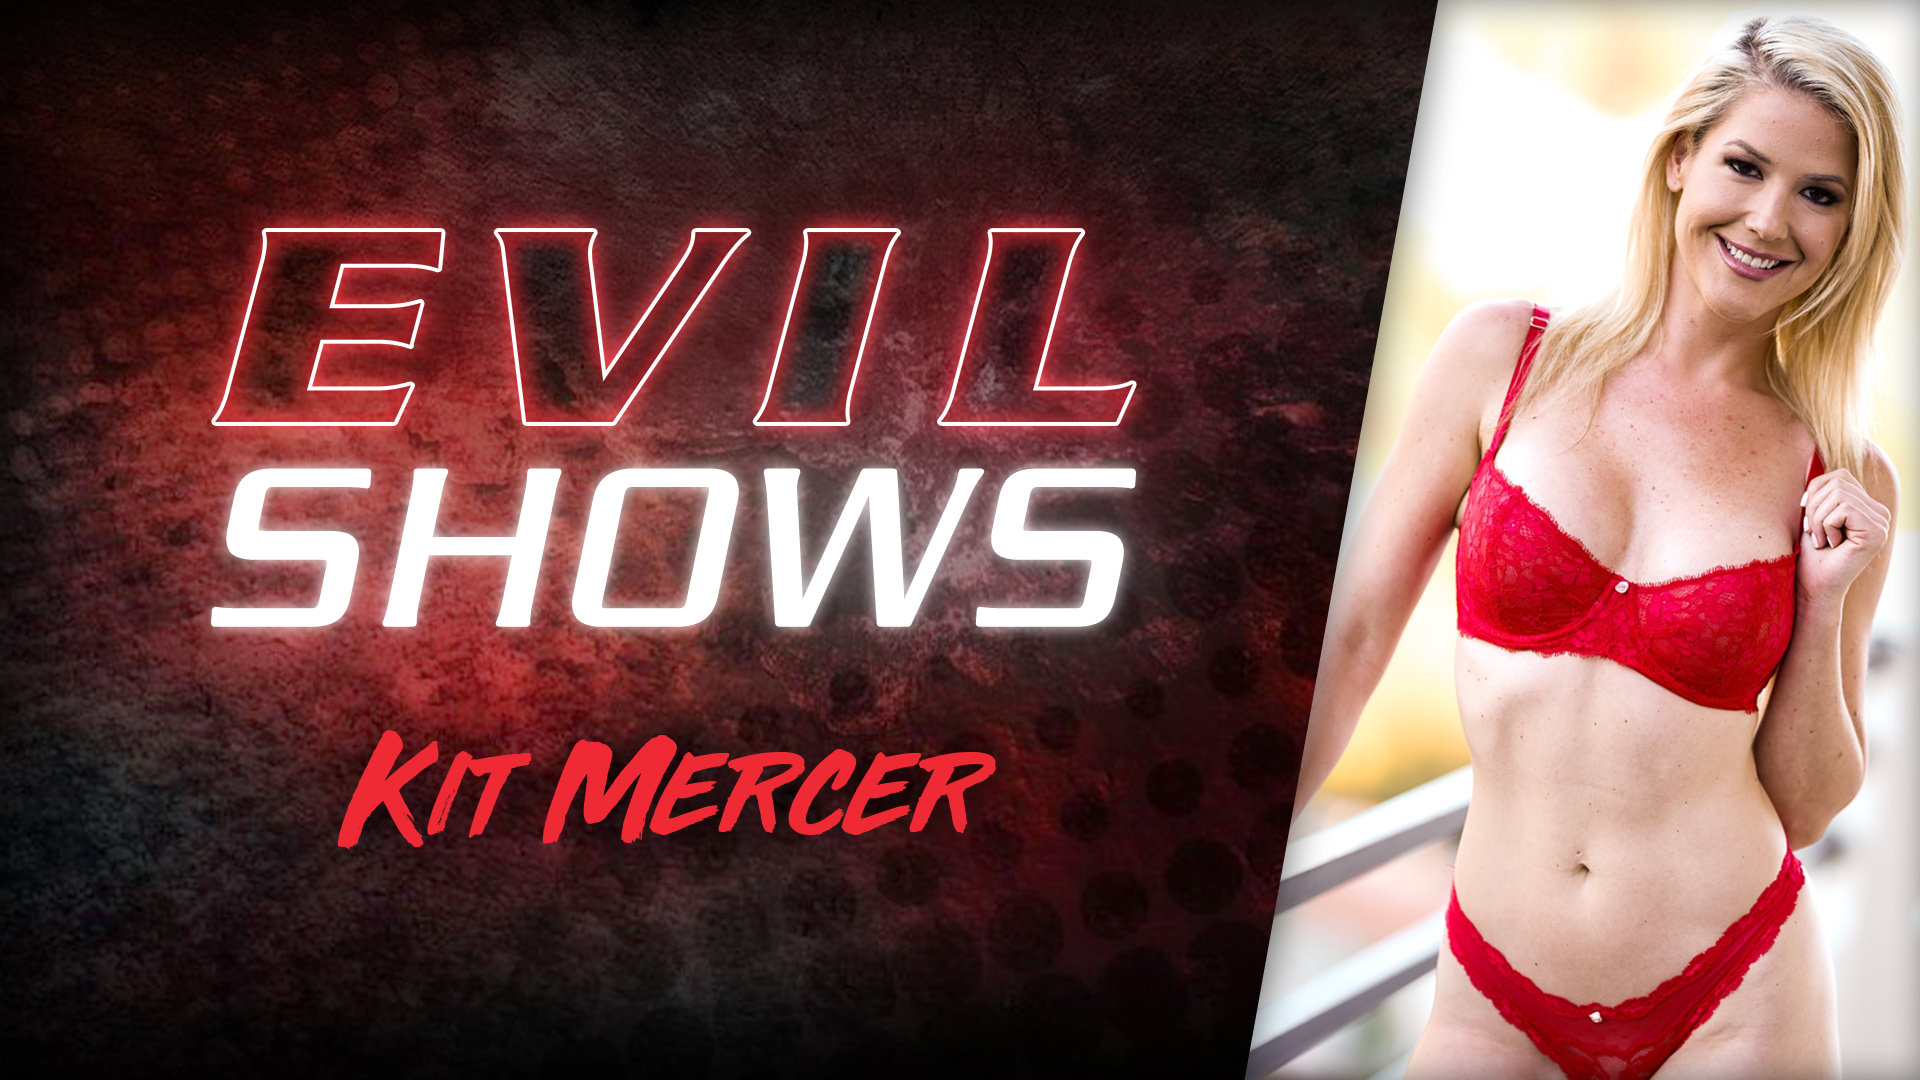 Evil Shows - Kit Mercer Escena 1